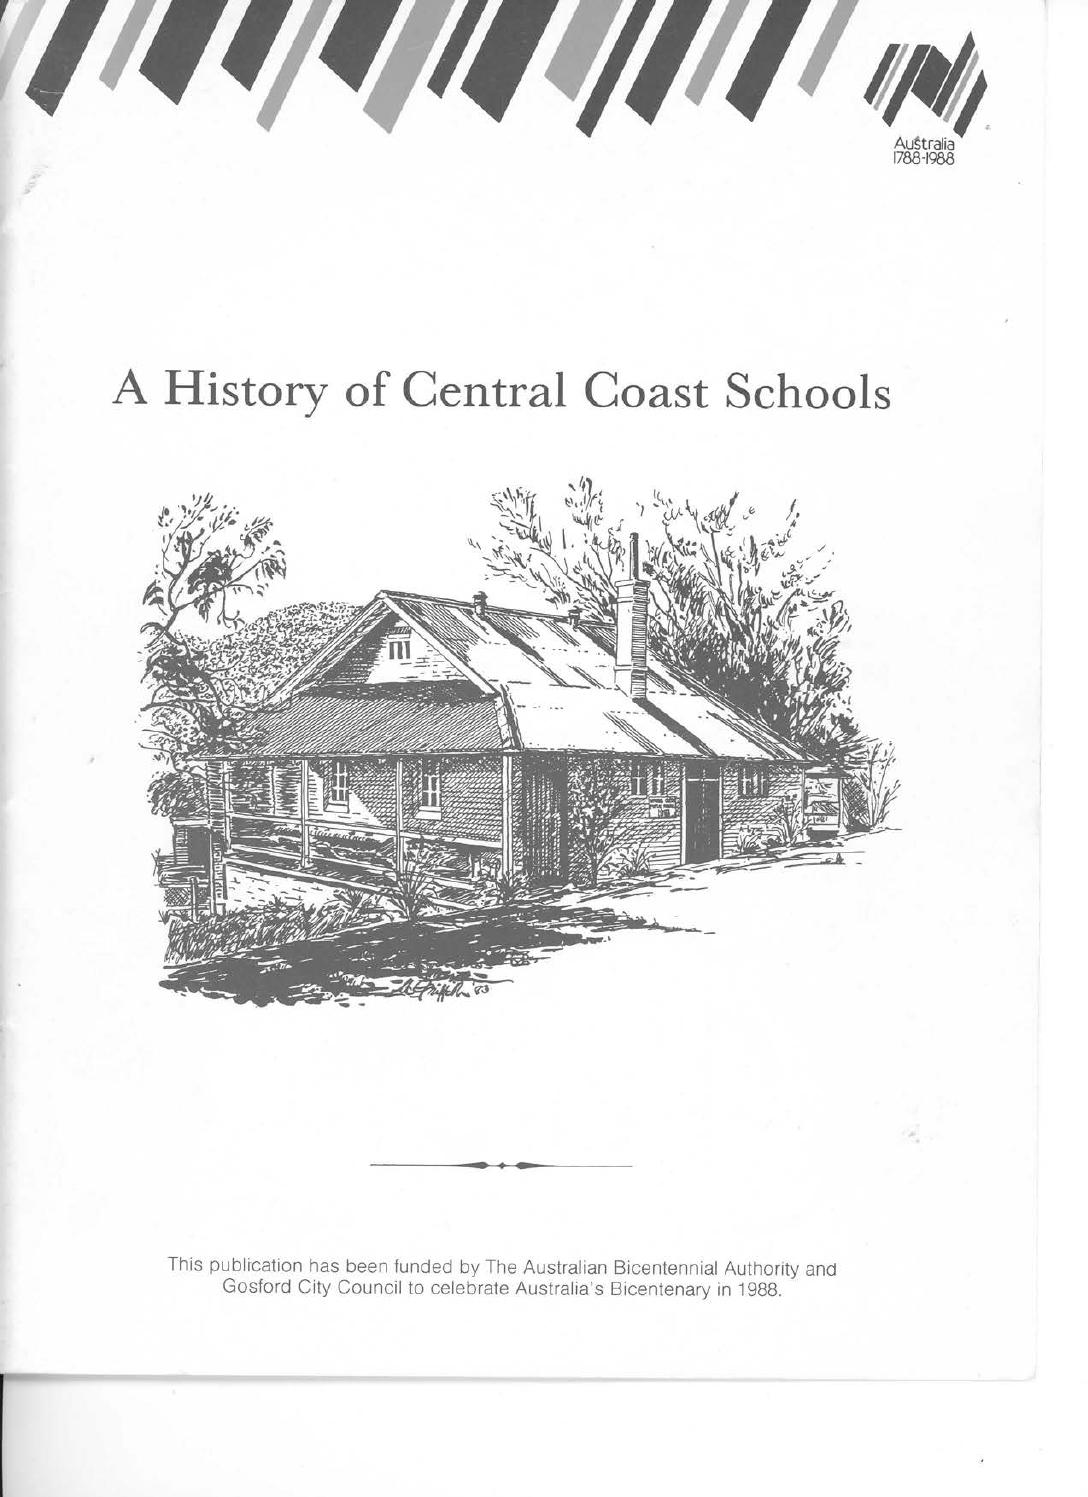 A History of Central Coast Schools by Central Coast